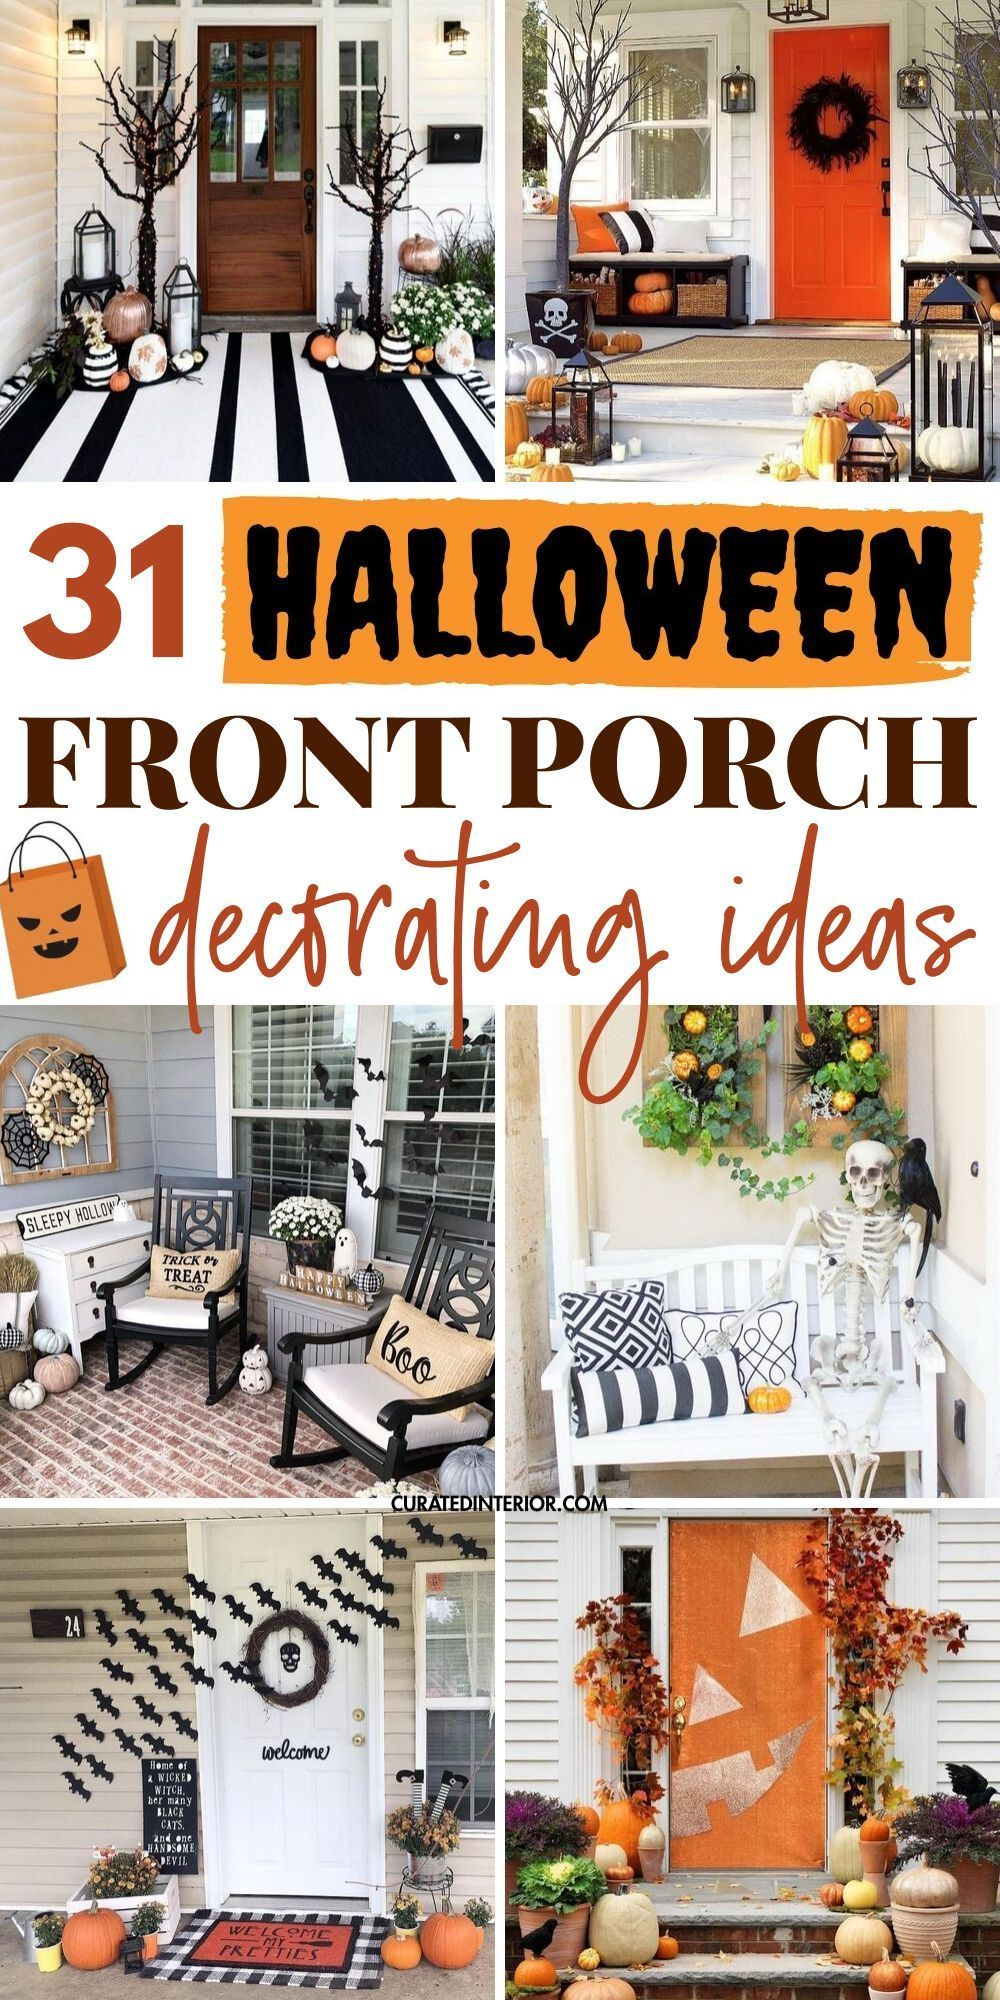 31 Halloween Front Porch Decor Ideas to make your entryway spooky this October!